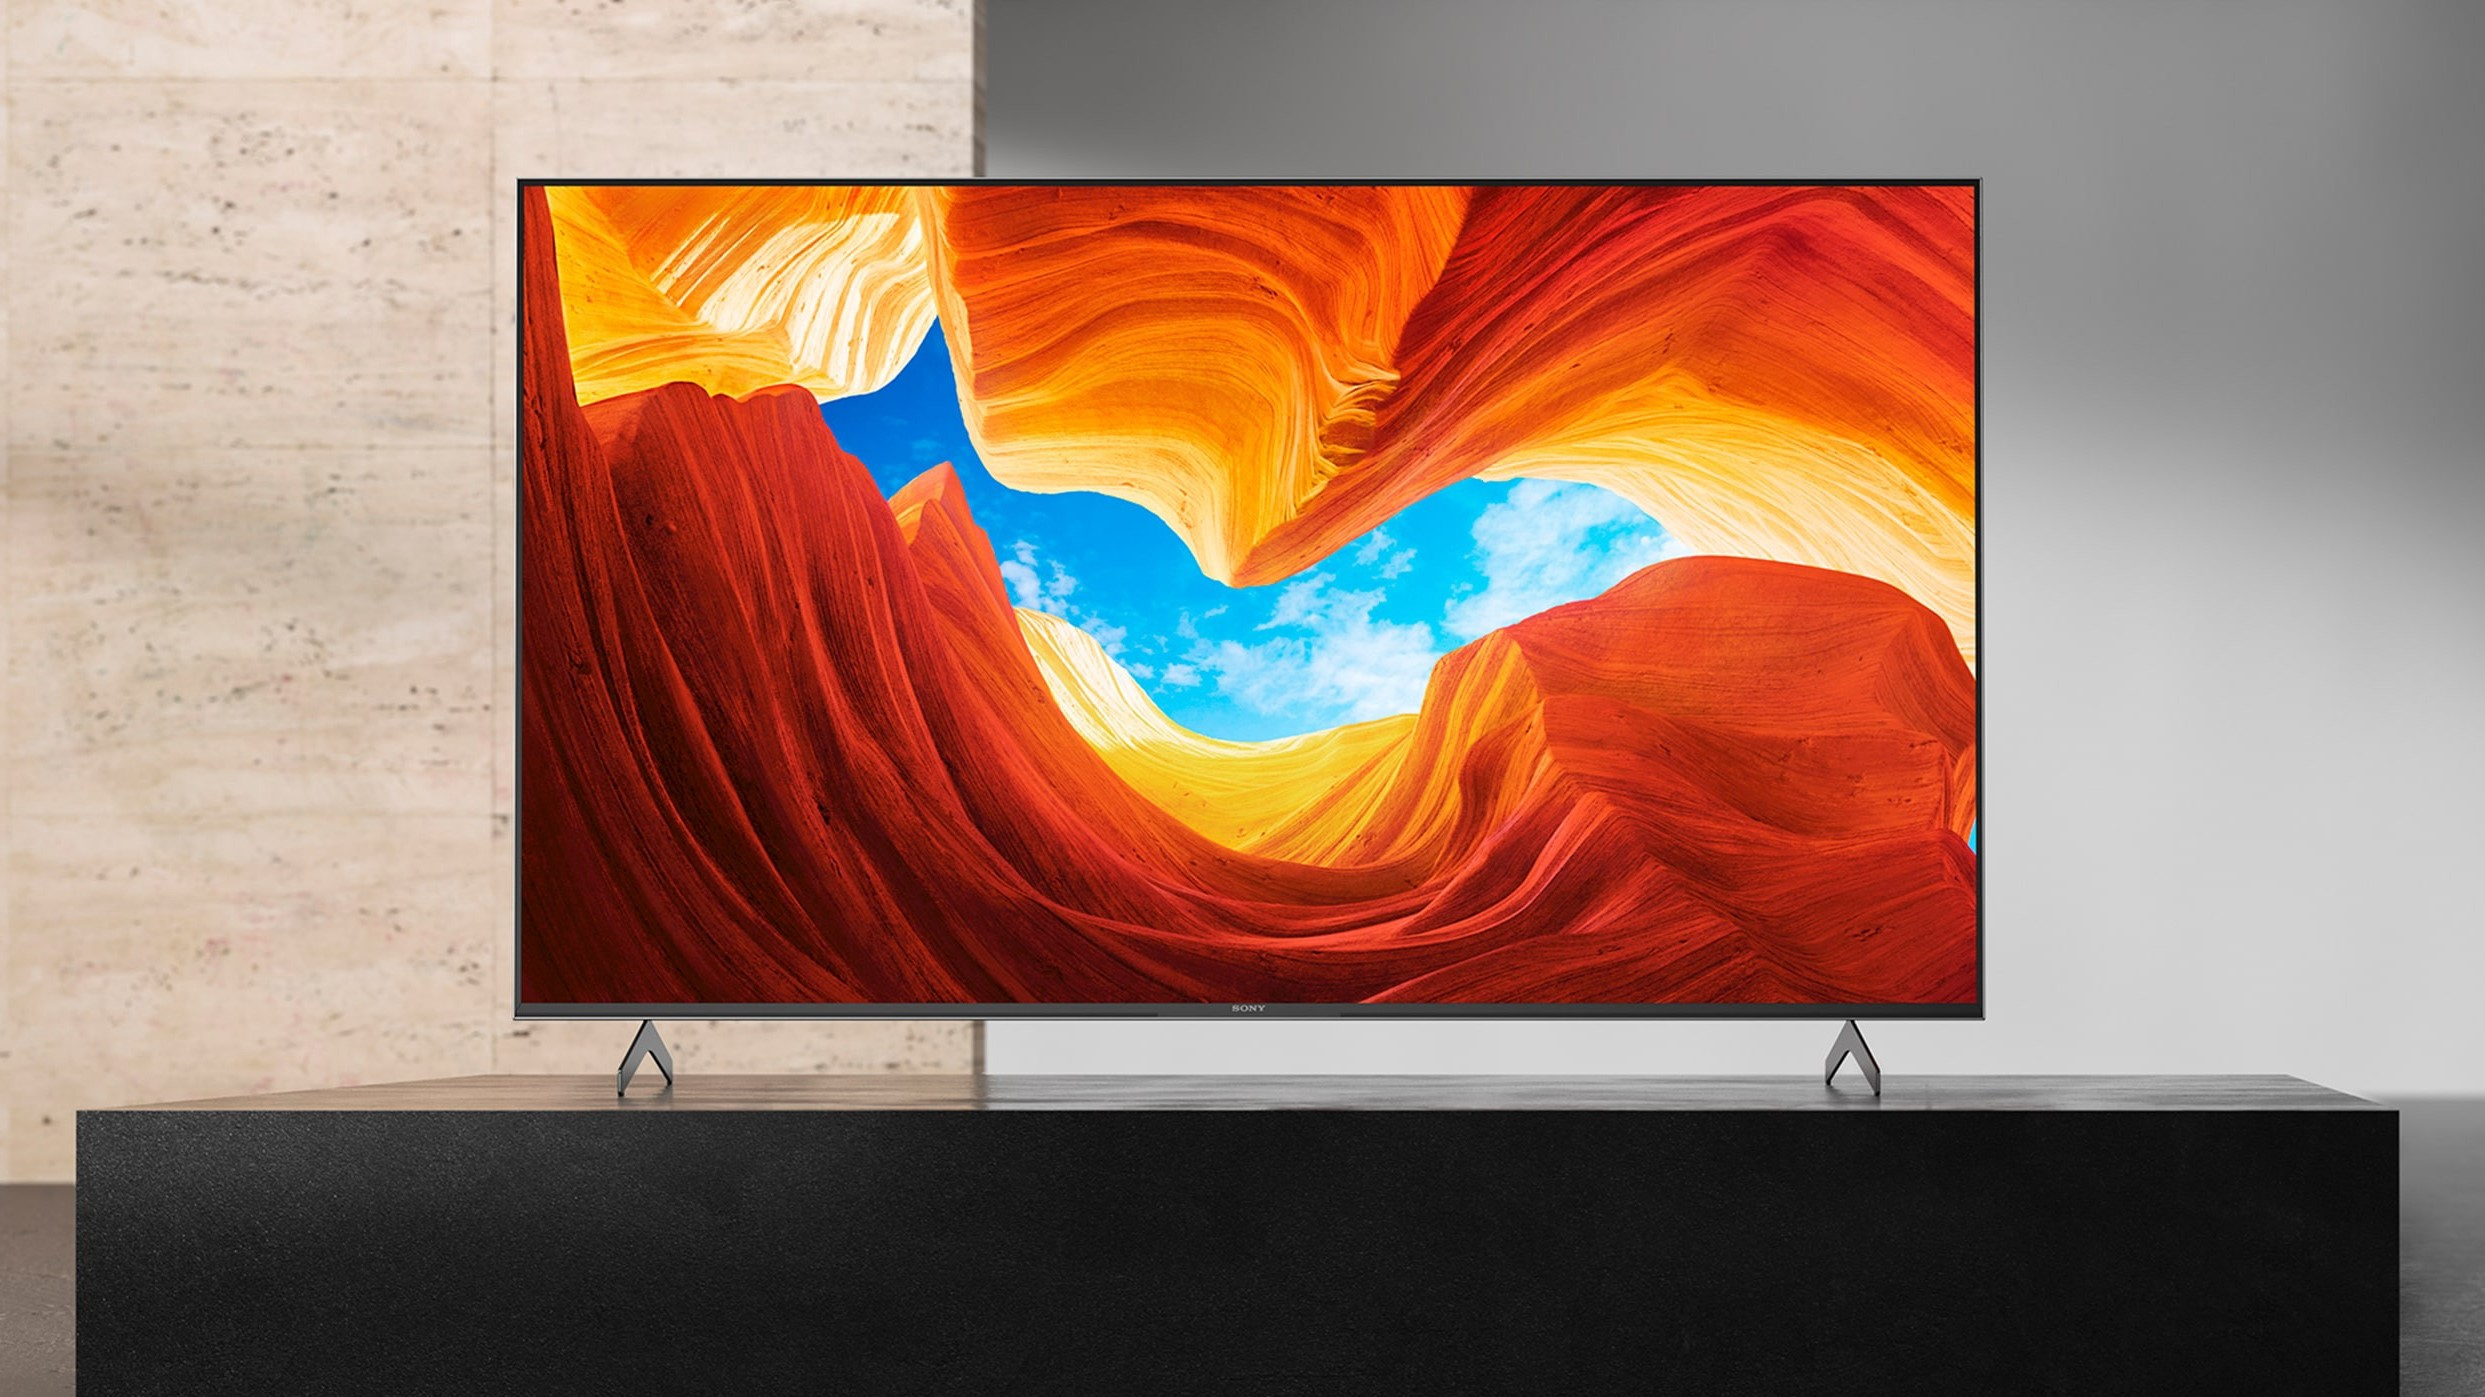 Best Tv 2020 Amazing Flatscreen Tvs Worth Buying Techradar